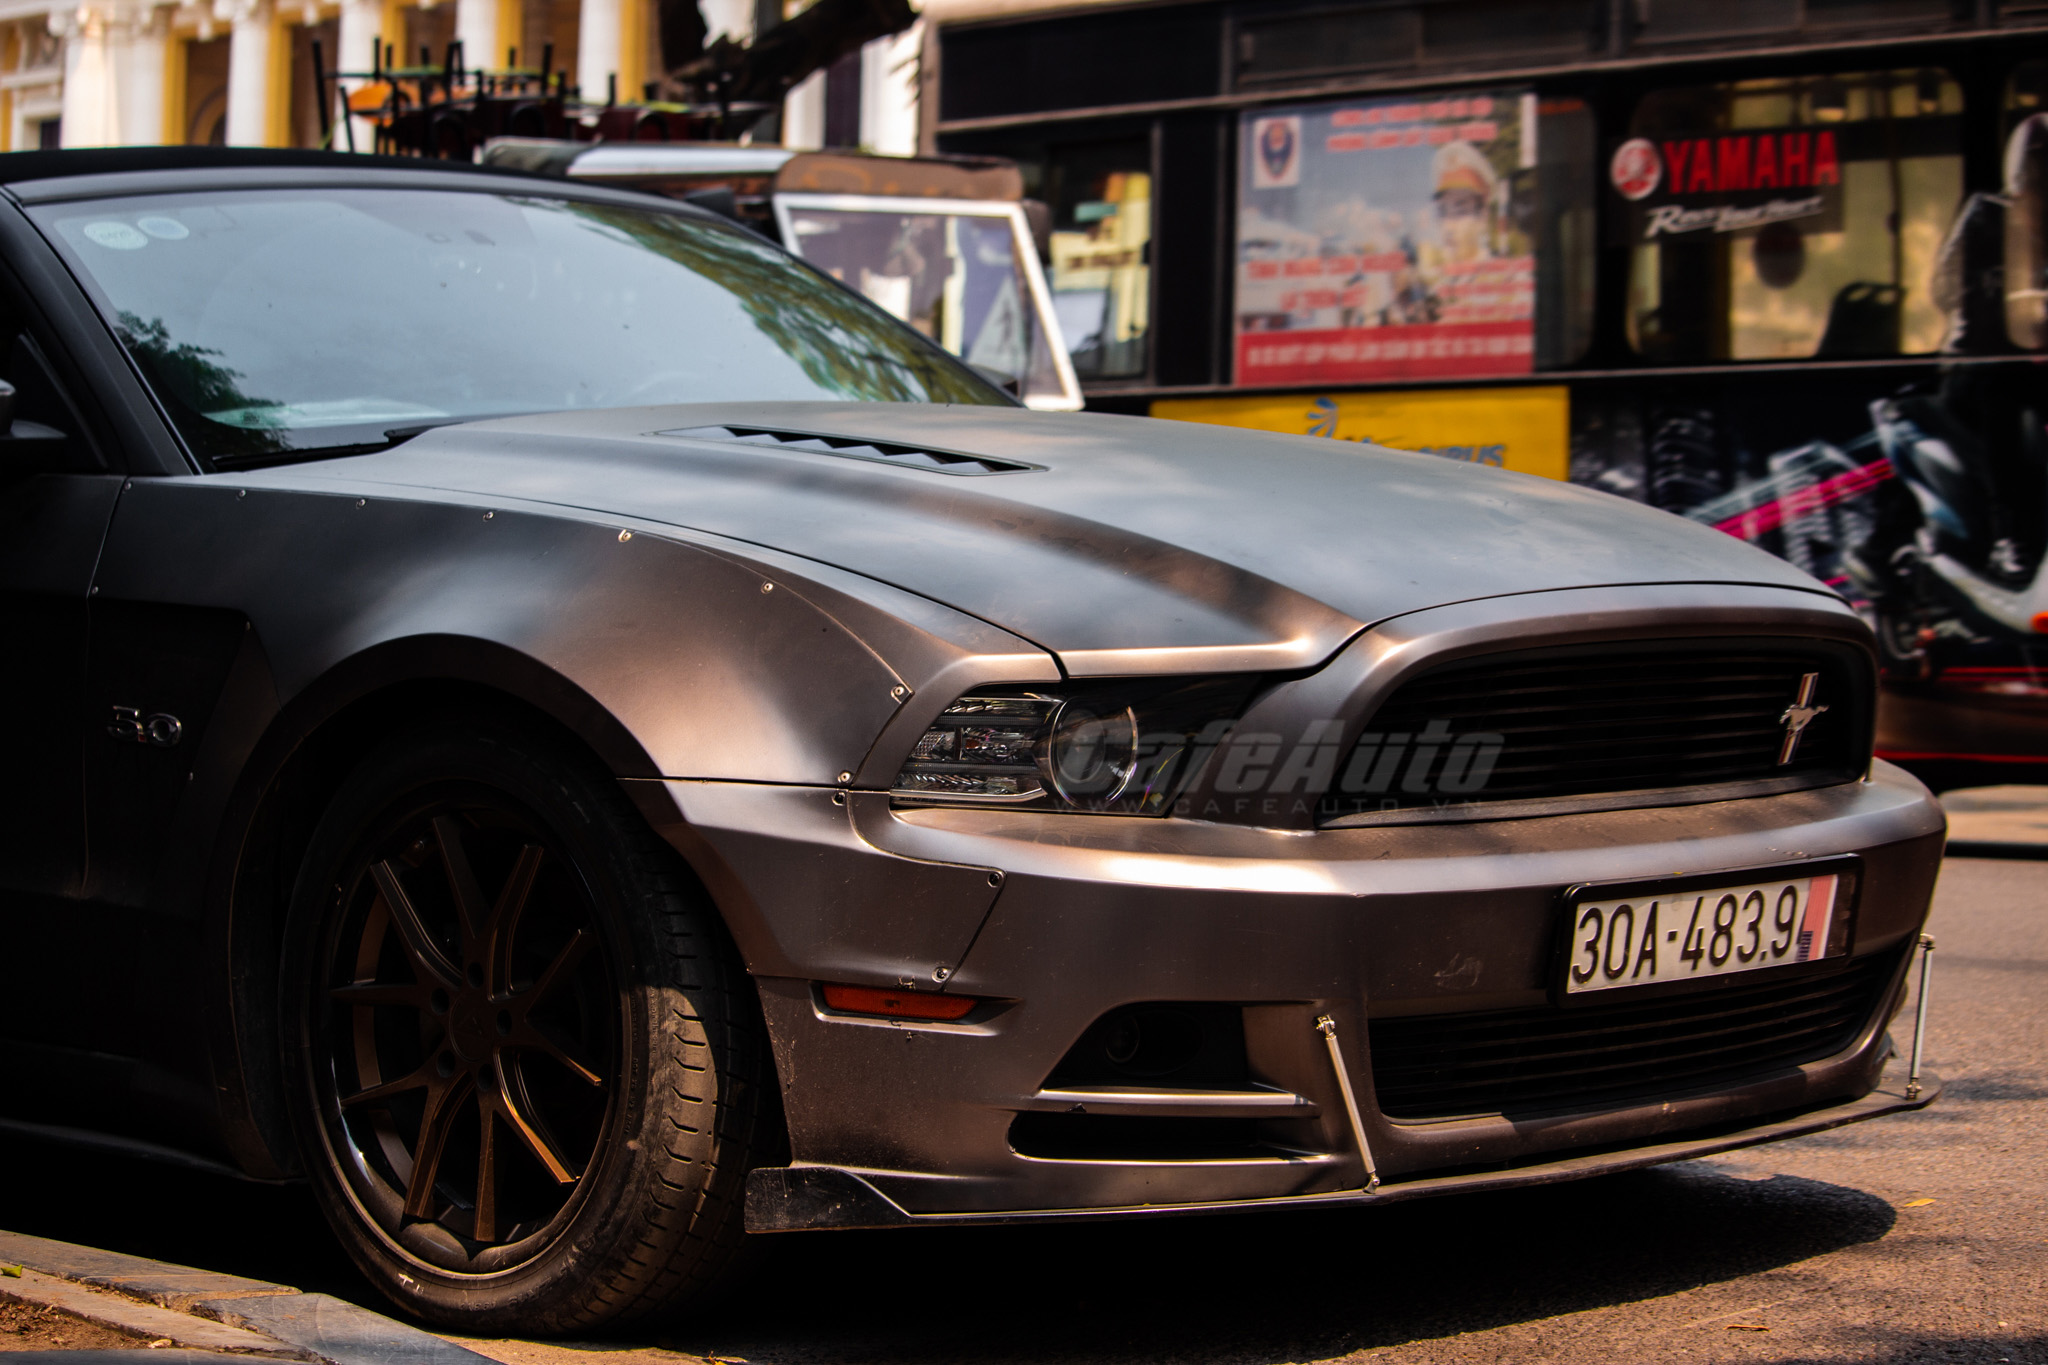 mustangGT-cafeautovn-2